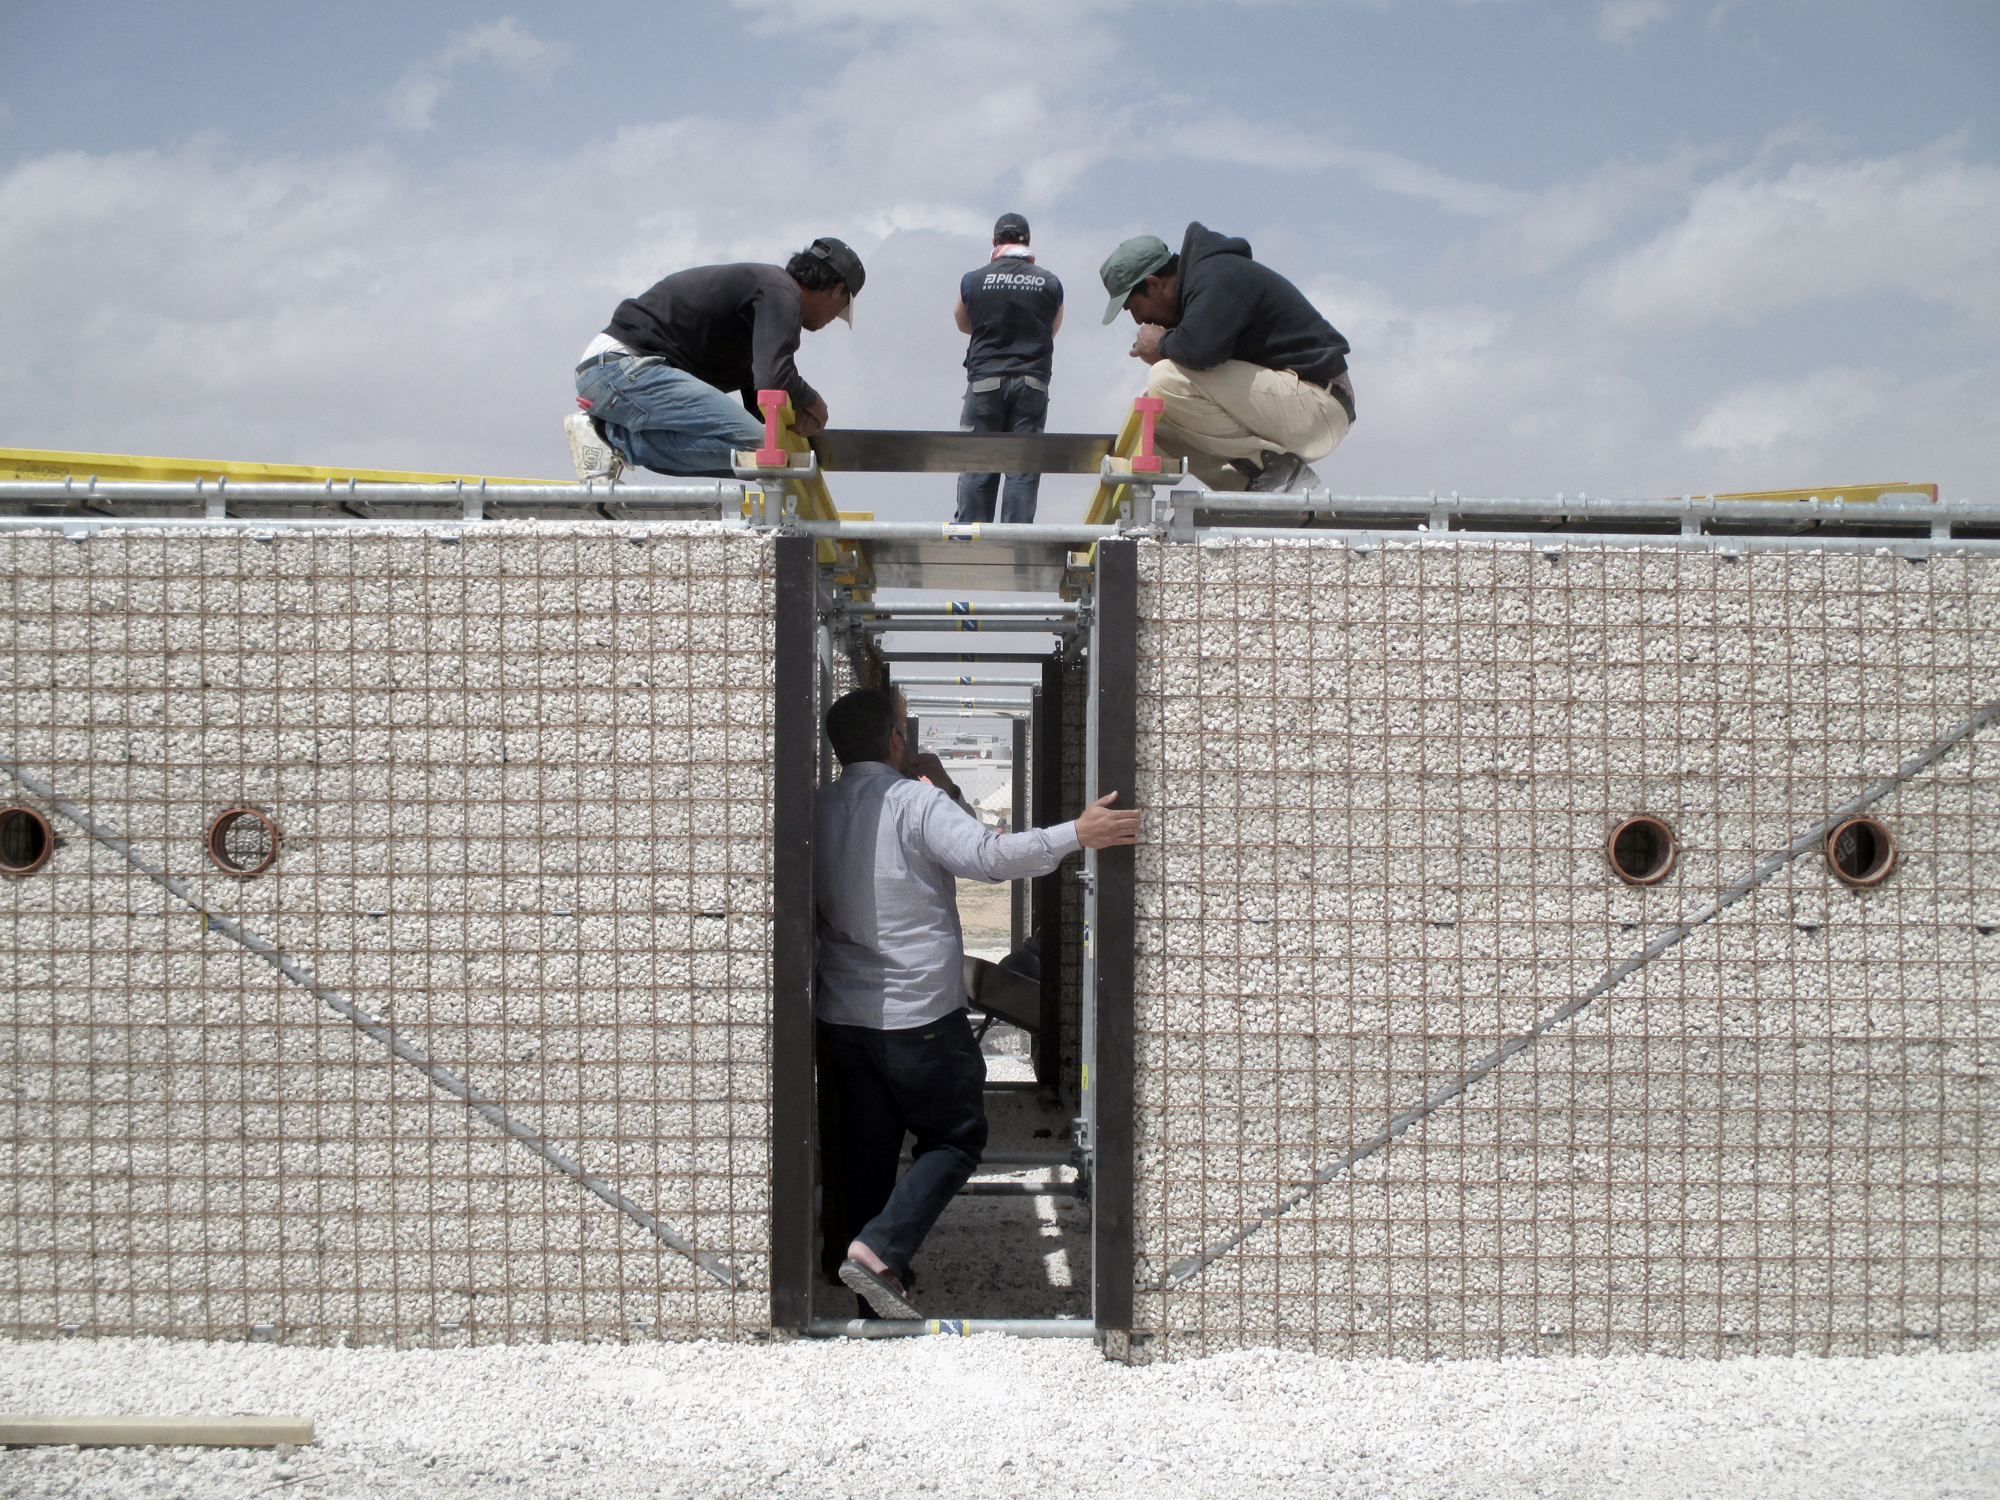 These Schools for Refugee Children in Jordan are Built Using Scaffolding and Sand